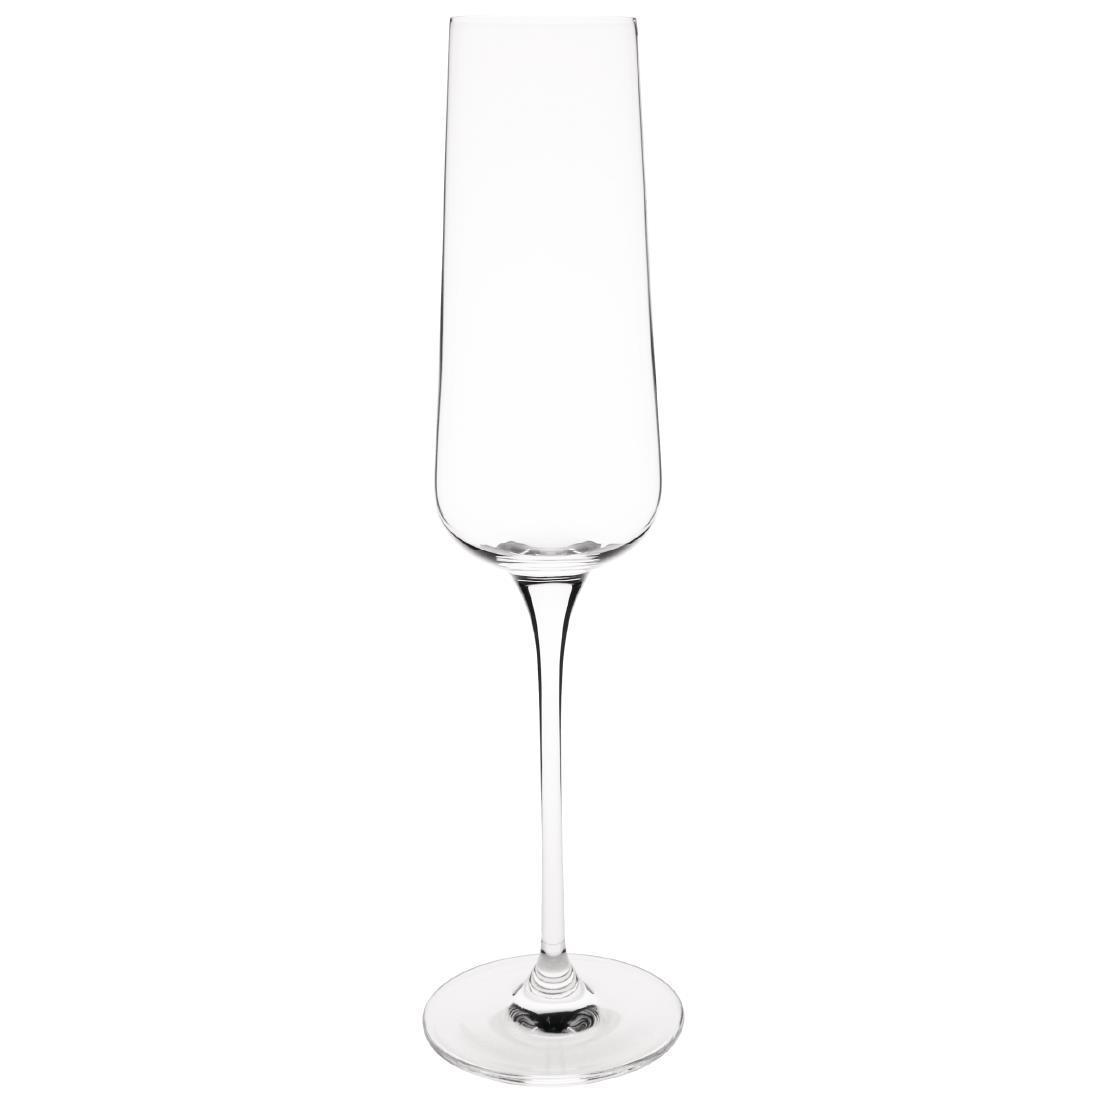 Olympia Claro One Piece Angular Champagne Flute 260ml